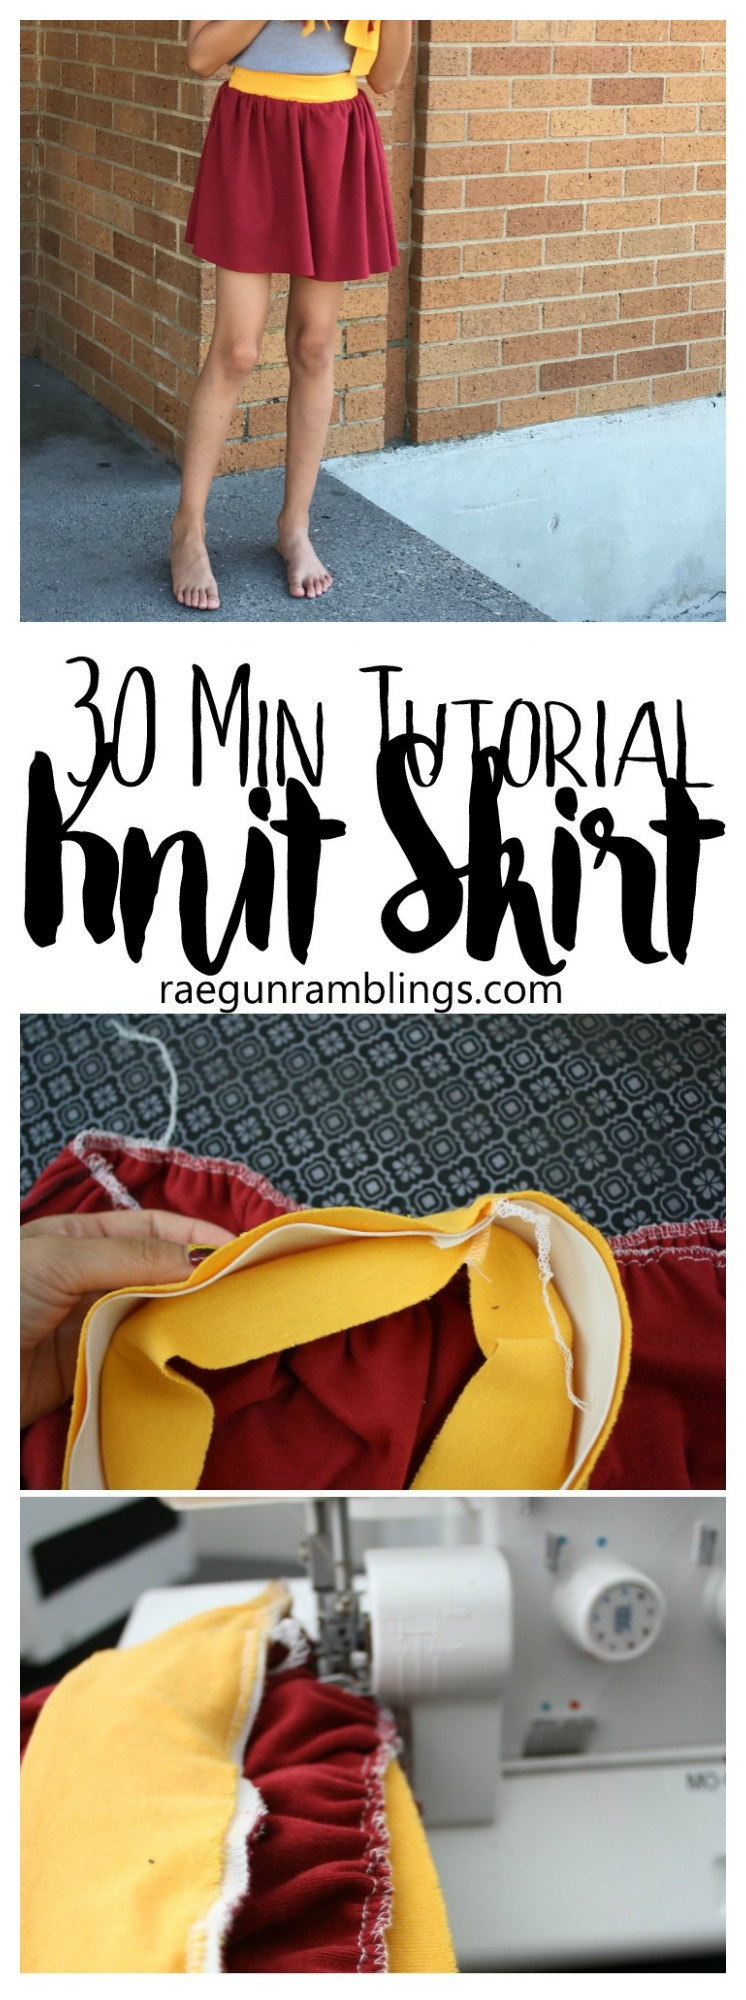 Great sewing tutorial and super clear instructions for how to make a pattern to fit everyone. 30 minute knit skirt tutorial